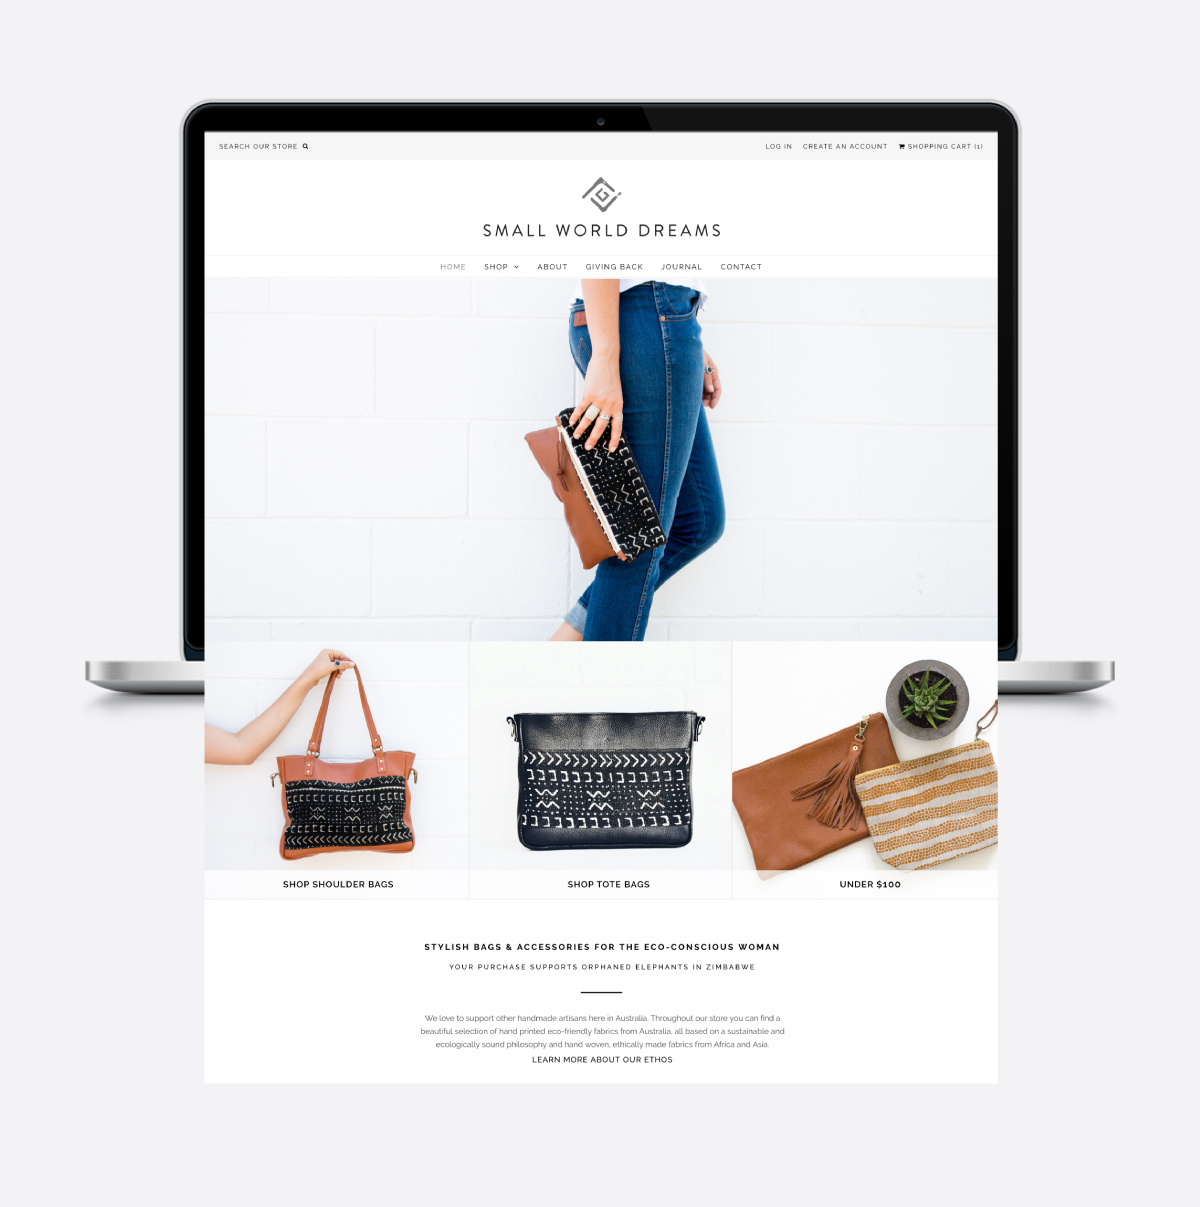 Ecommerce website homepage design for Small World Dreams